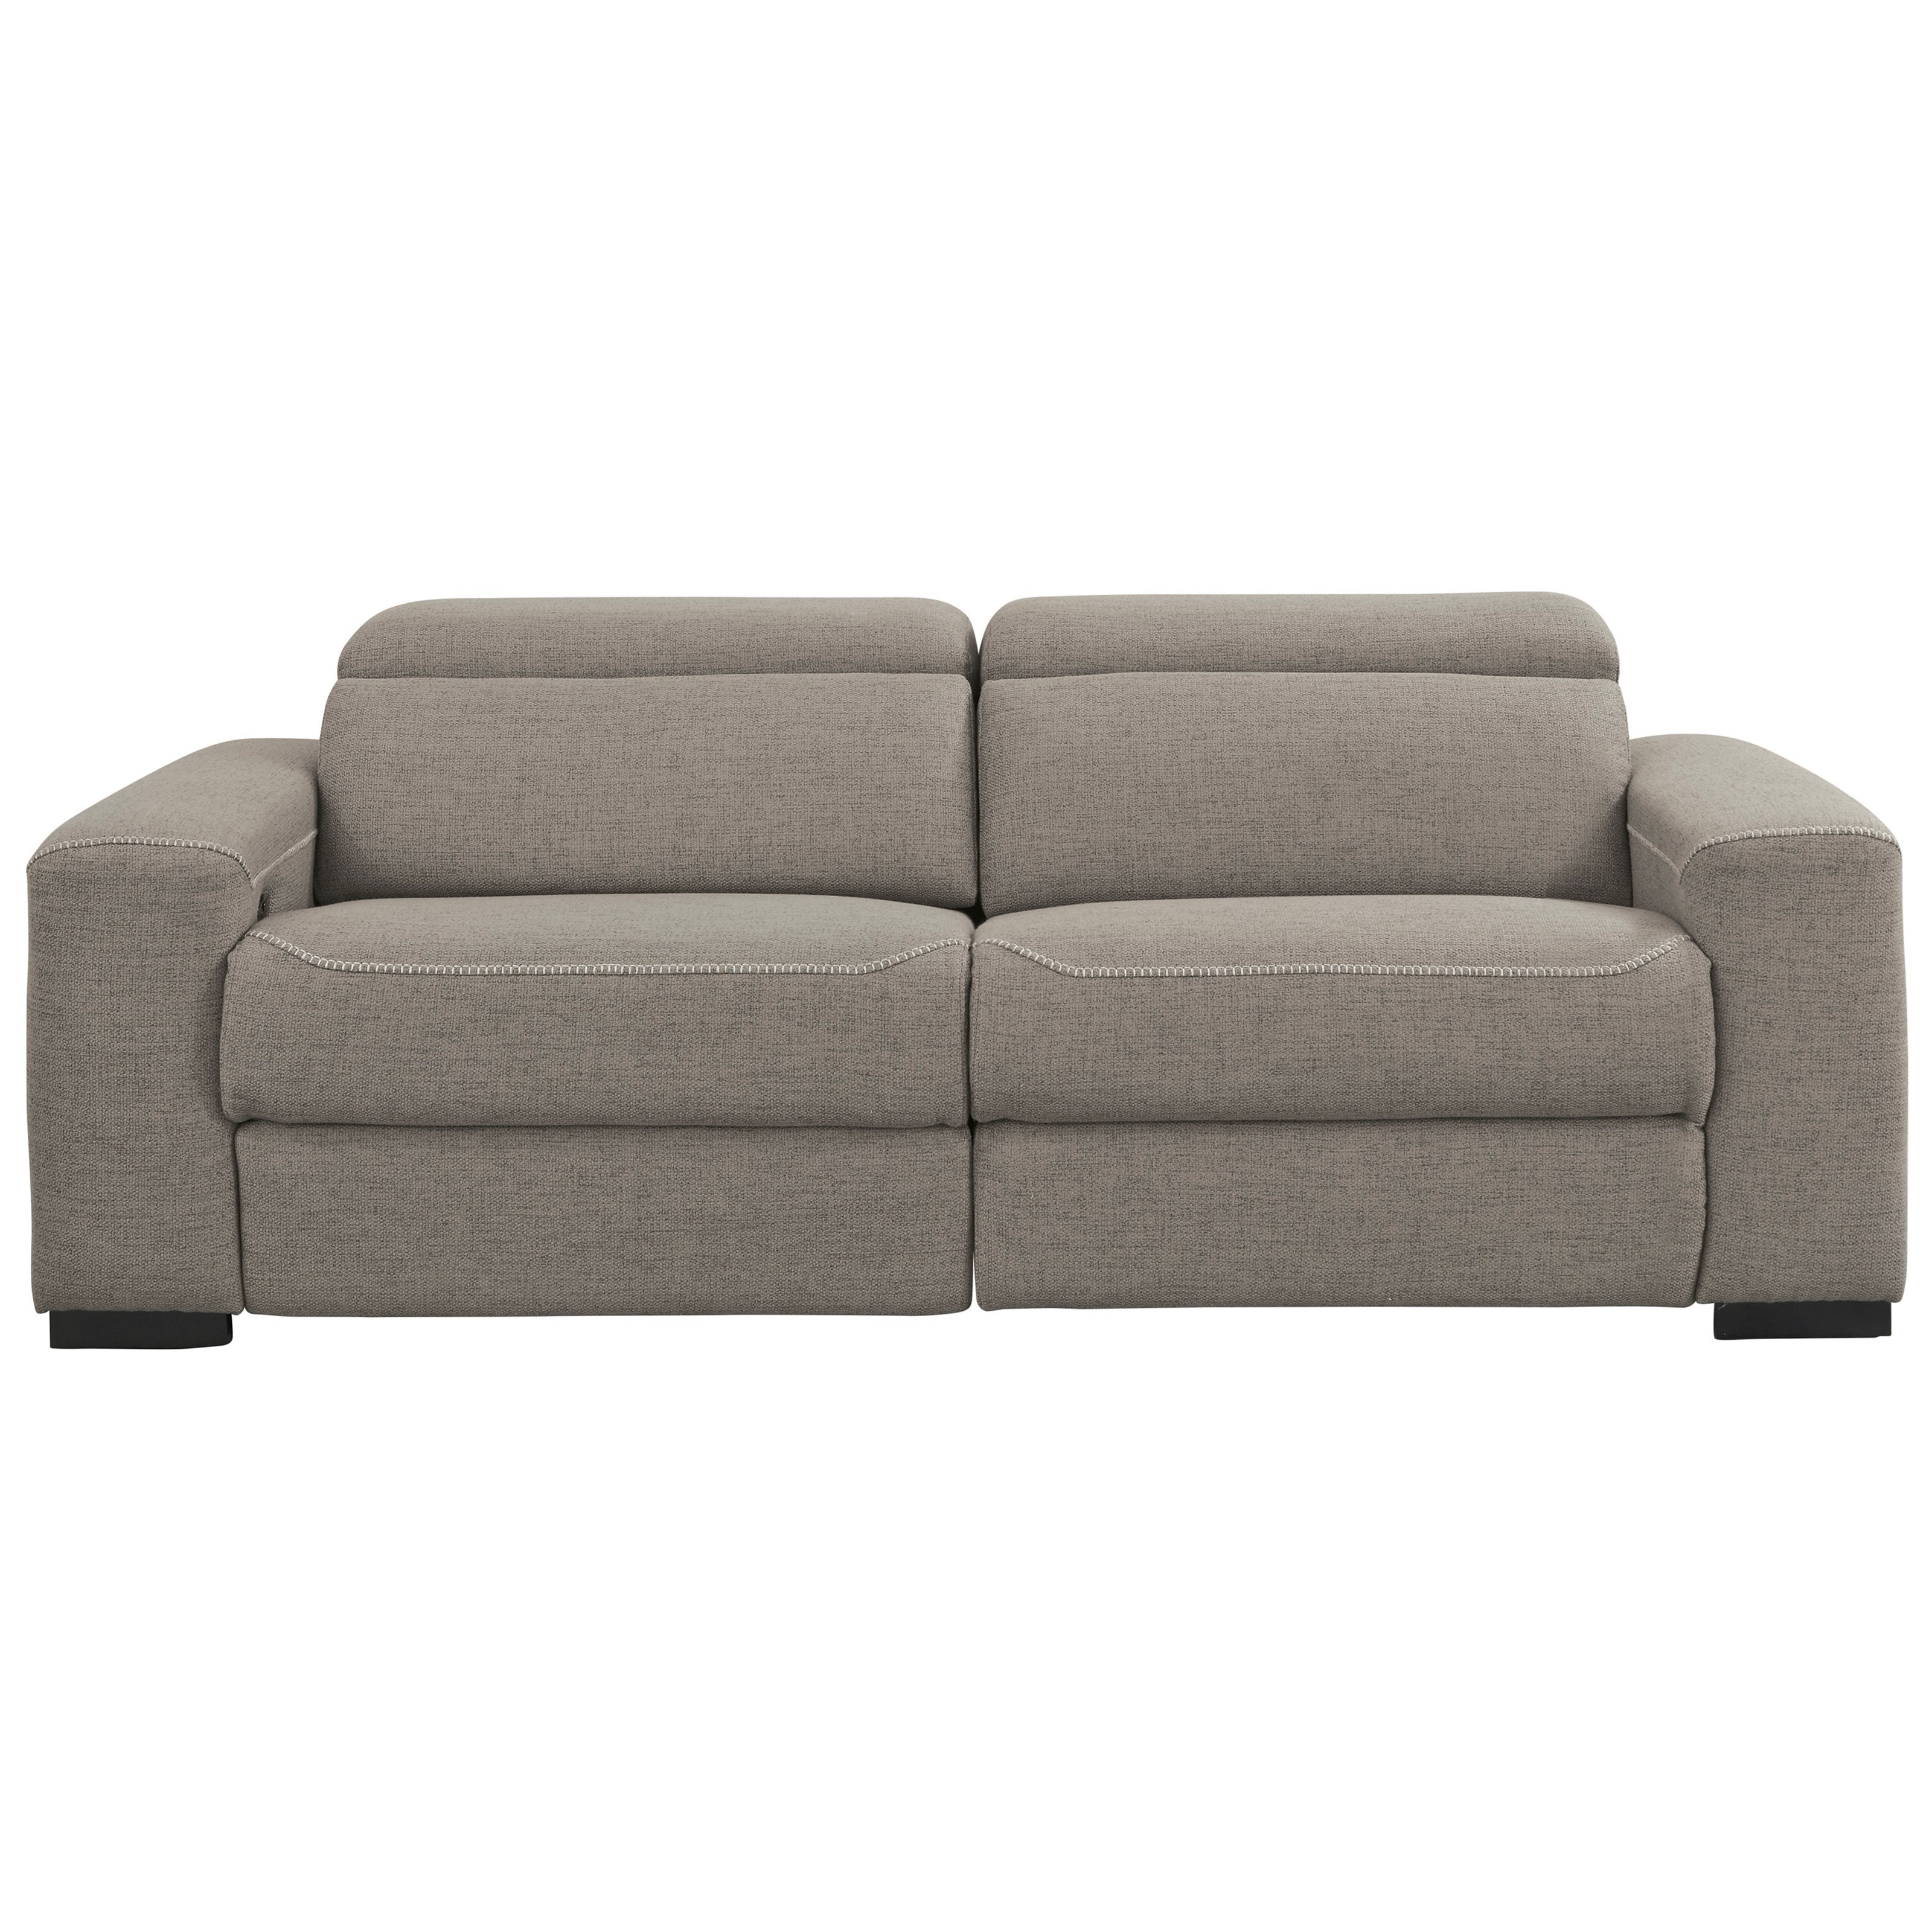 Signature Design By Ashley Mabton 7700558 62 Power Reclining Loveseat W Power Headrests Furniture And Appliancemart Reclining Loveseats